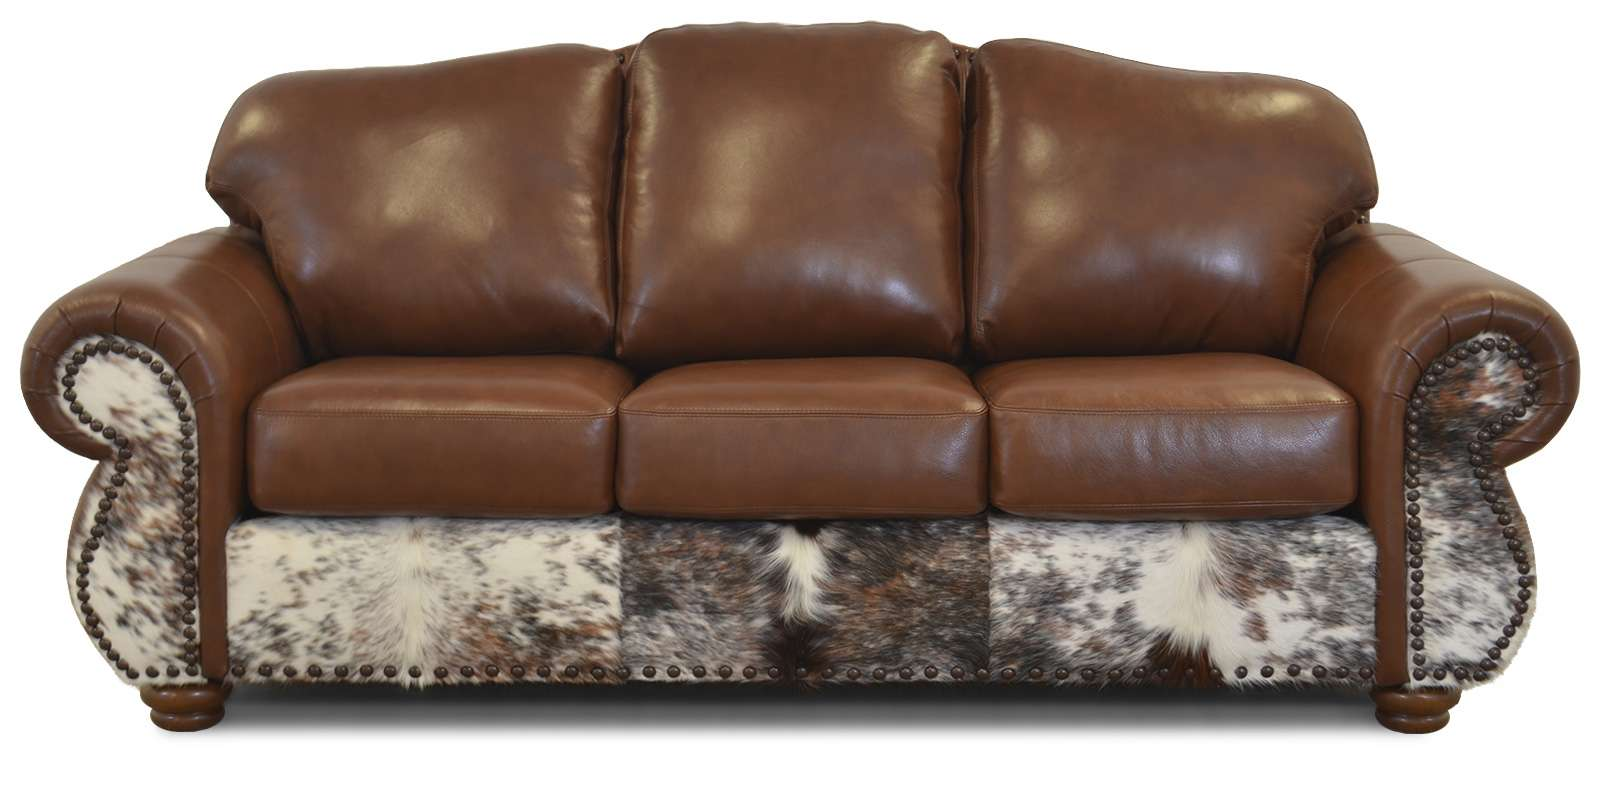 Vintage Leather Furniture Manufacturing Made in the USA old west rustic seating Tahoka sofa photo. Hair on Hide Leather furniture manufactured in the USA.